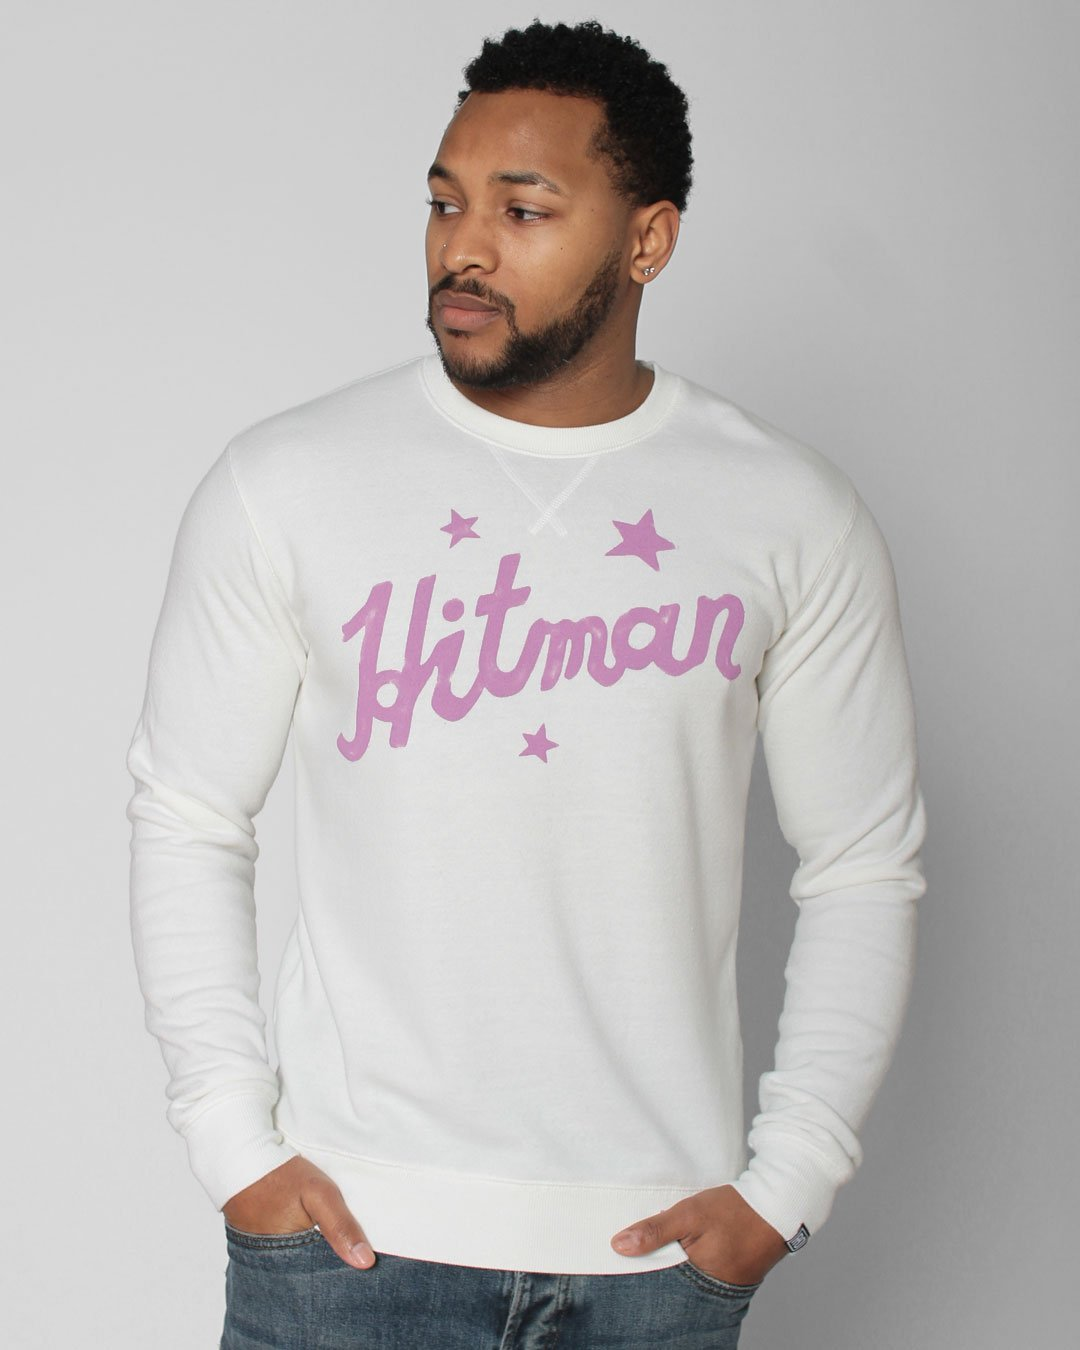 Bret Hart Hitman Sweatshirt - Roots of Inc dba Roots of Fight